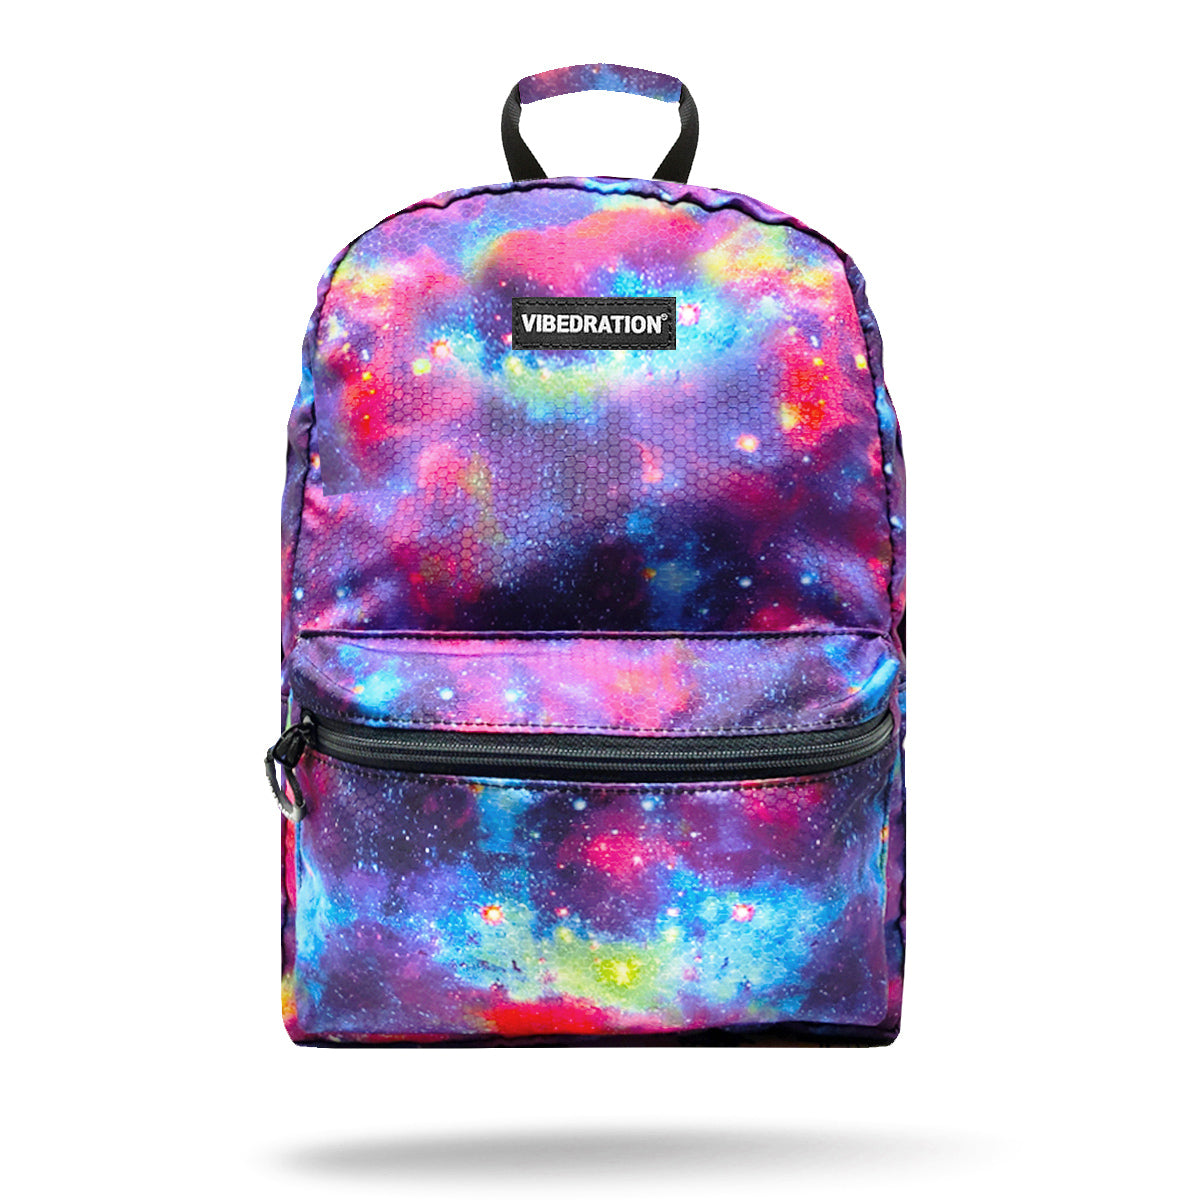 Galaxy rave hydration backpack 2 liter water pack